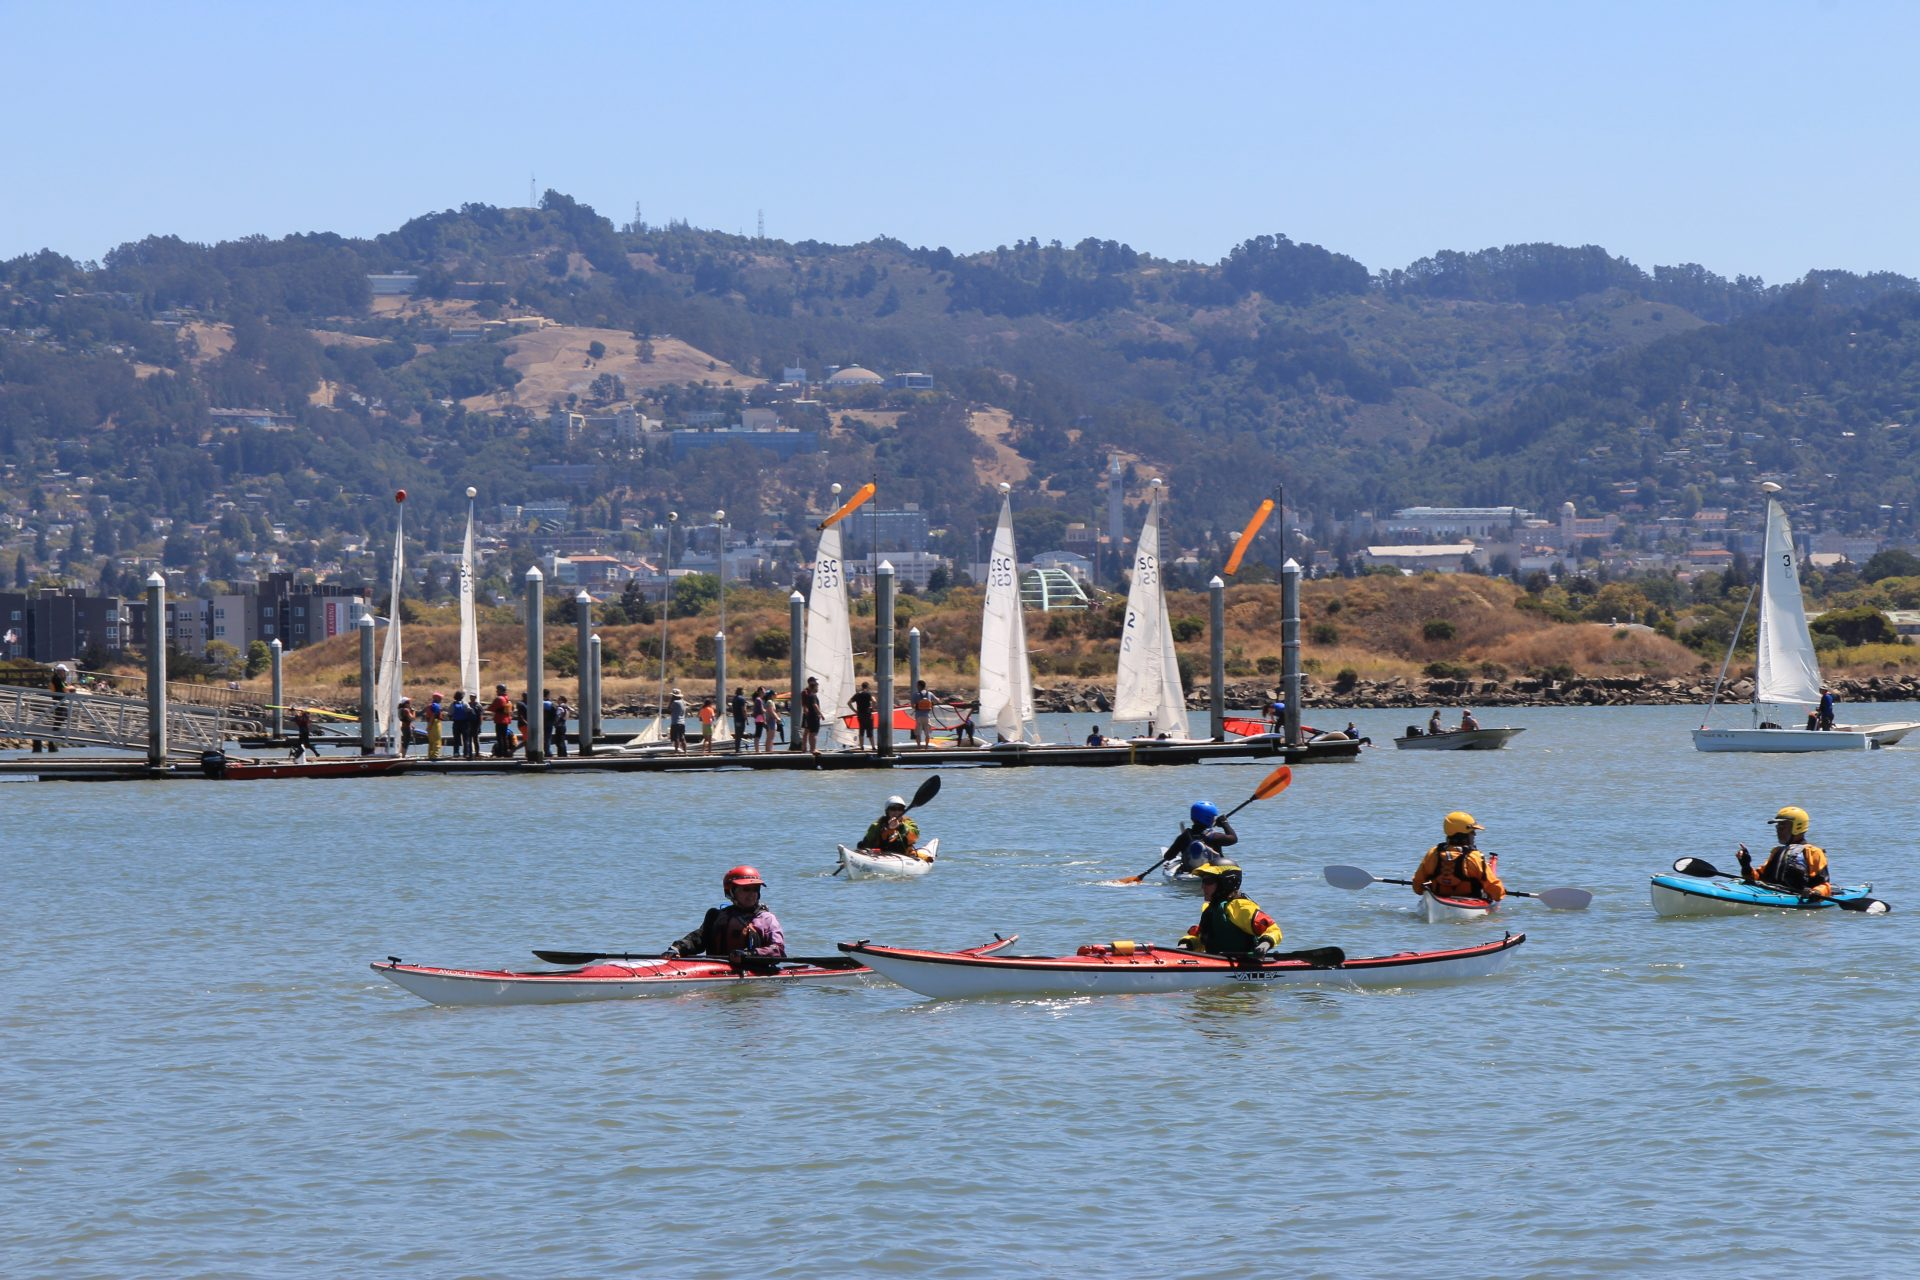 Six kayakers paddling on blue water, sailboats behind and east Bay hills in distance